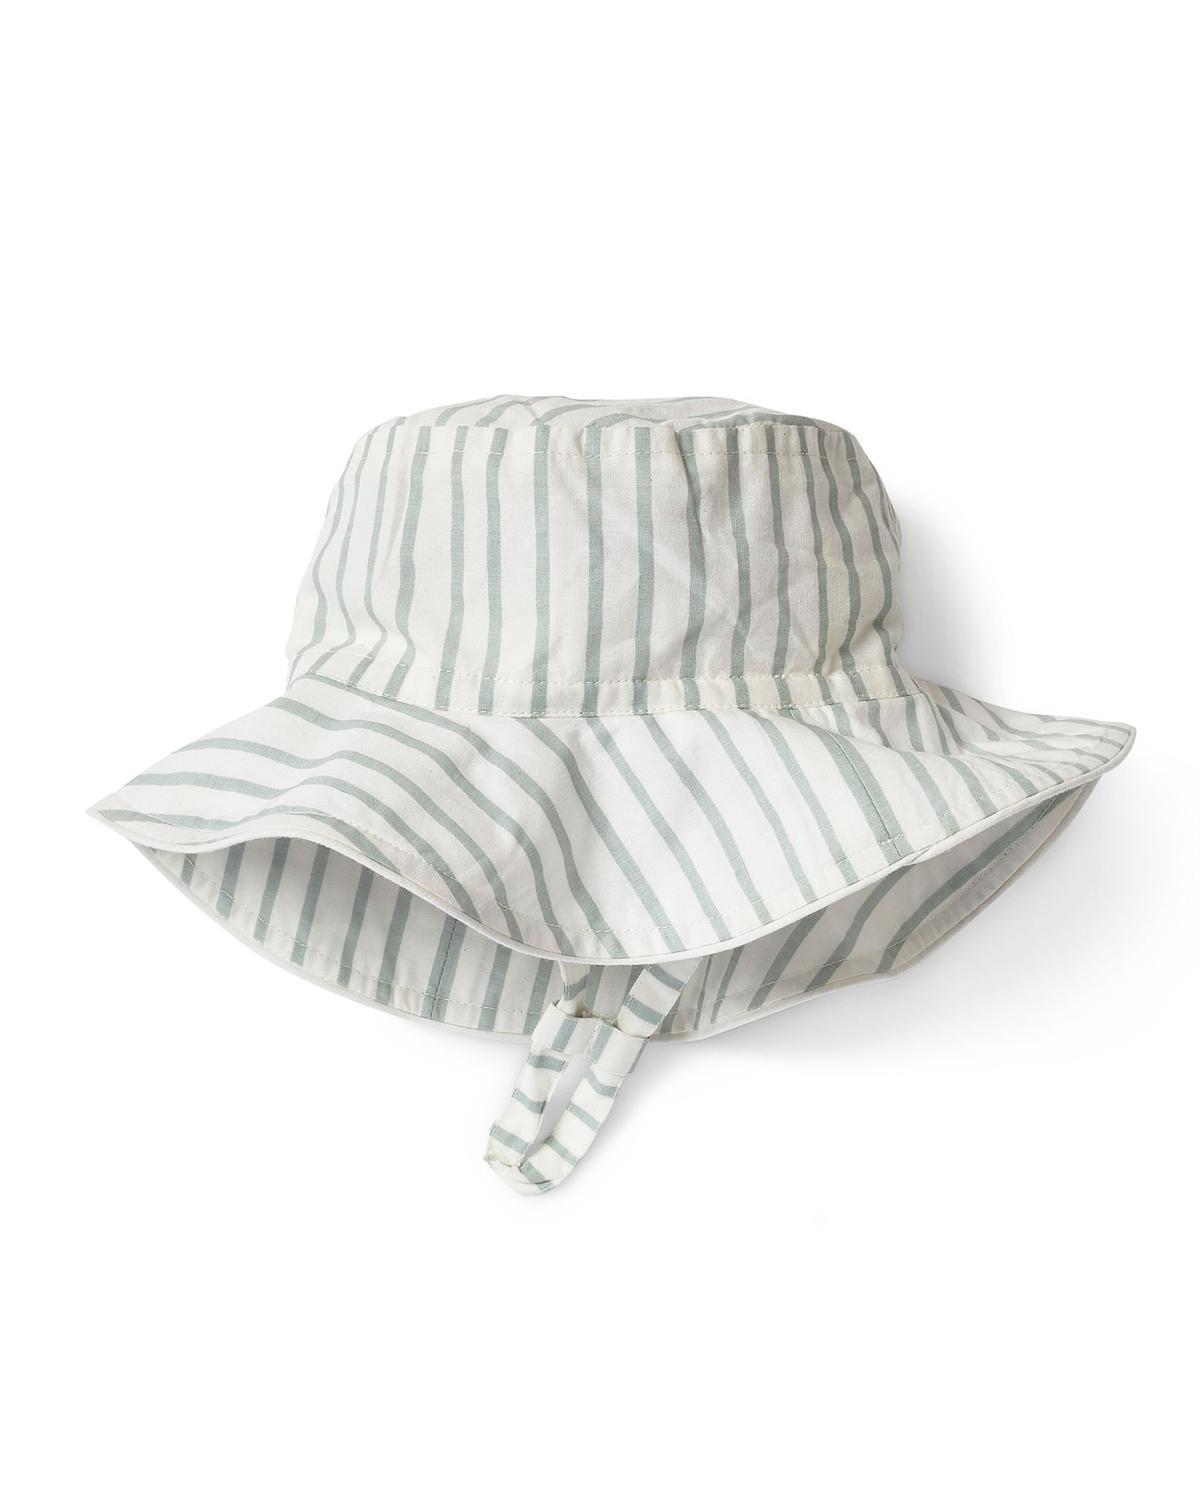 Little pehr designs inc baby accessories 0-6 stripes away bucket hat in sea